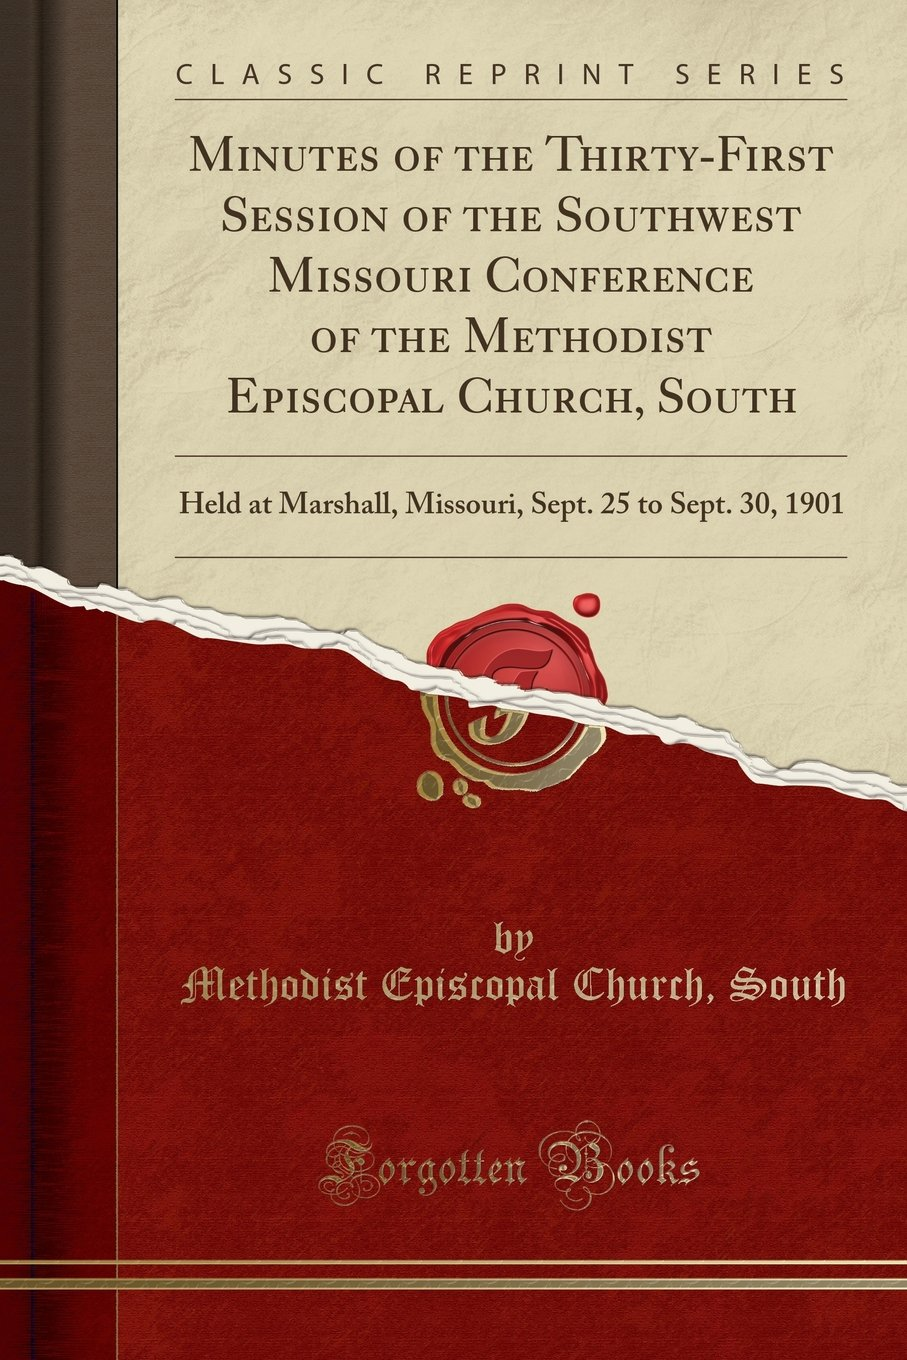 Download Minutes of the Thirty-First Session of the Southwest Missouri Conference of the Methodist Episcopal Church, South: Held at Marshall, Missouri, Sept. 25 to Sept. 30, 1901 (Classic Reprint) PDF